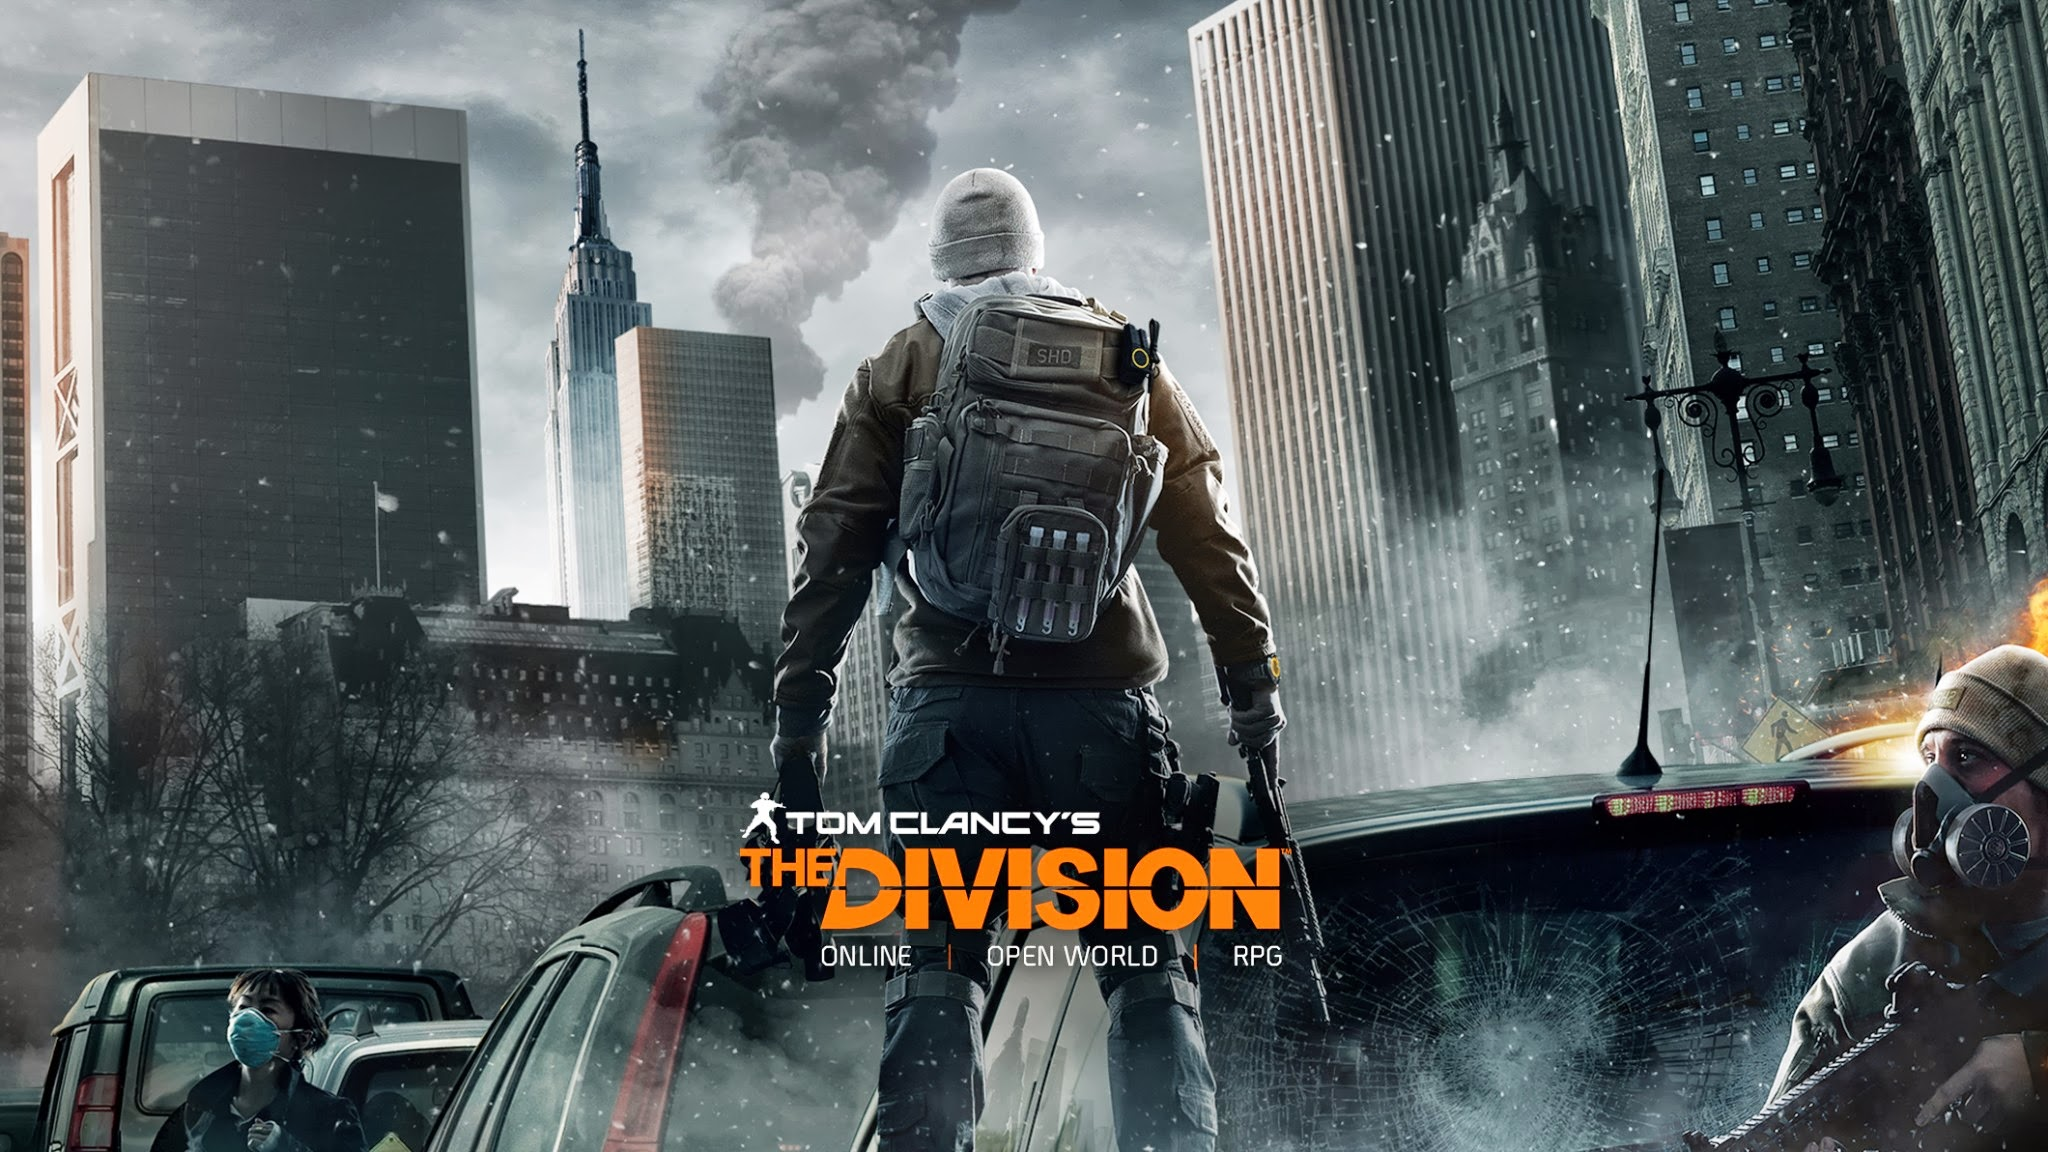 Photo of The Division are suport pentru GameWorks